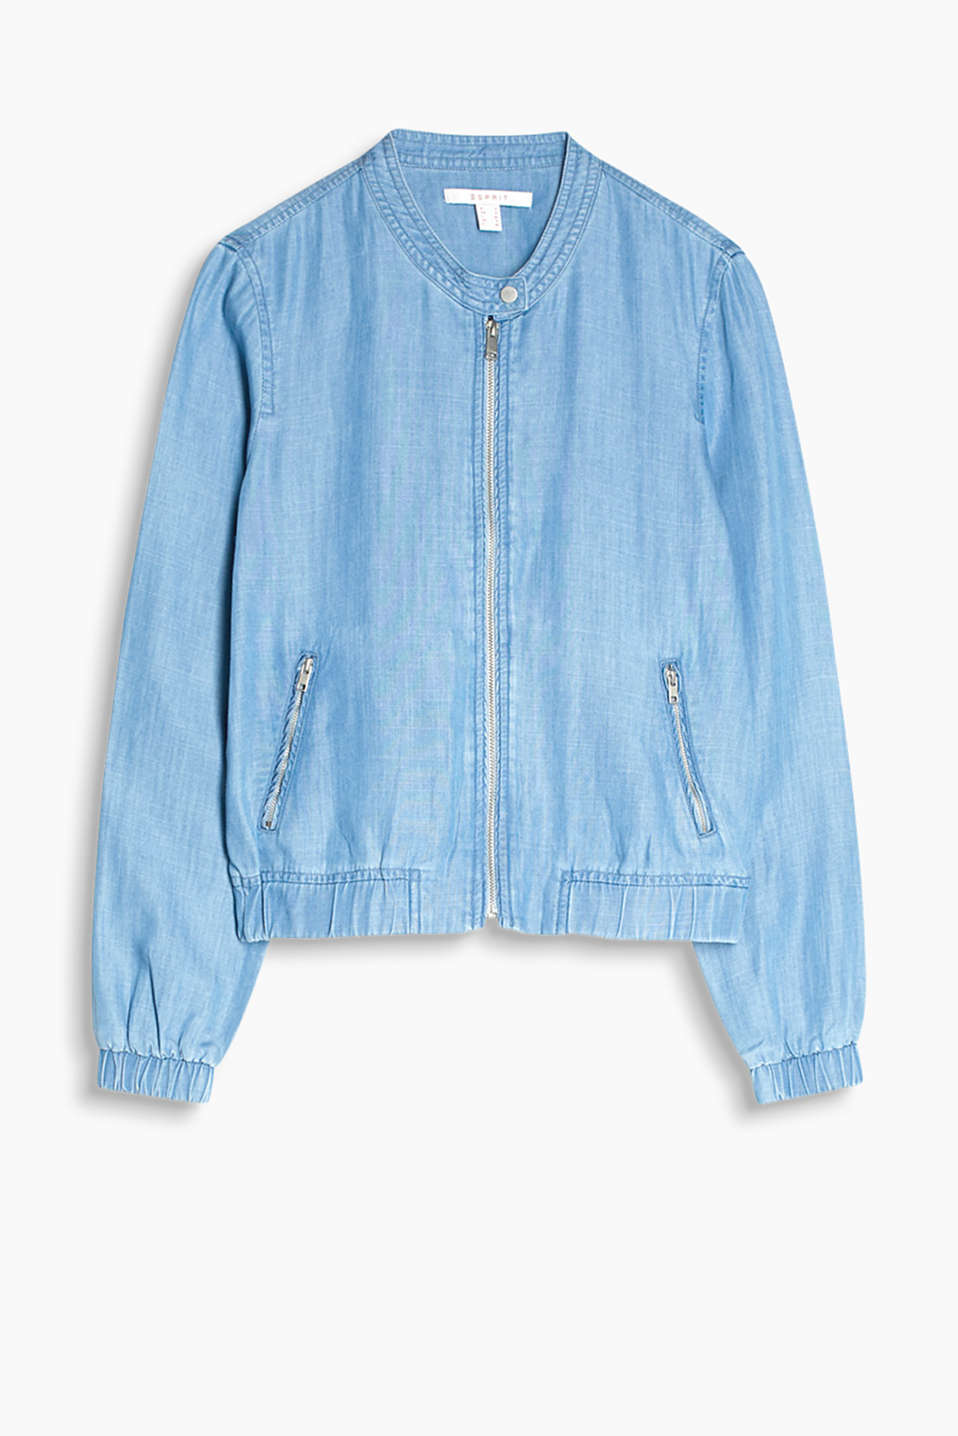 Loose, denim-effect bomber jacket with a fastenable stand-up collar